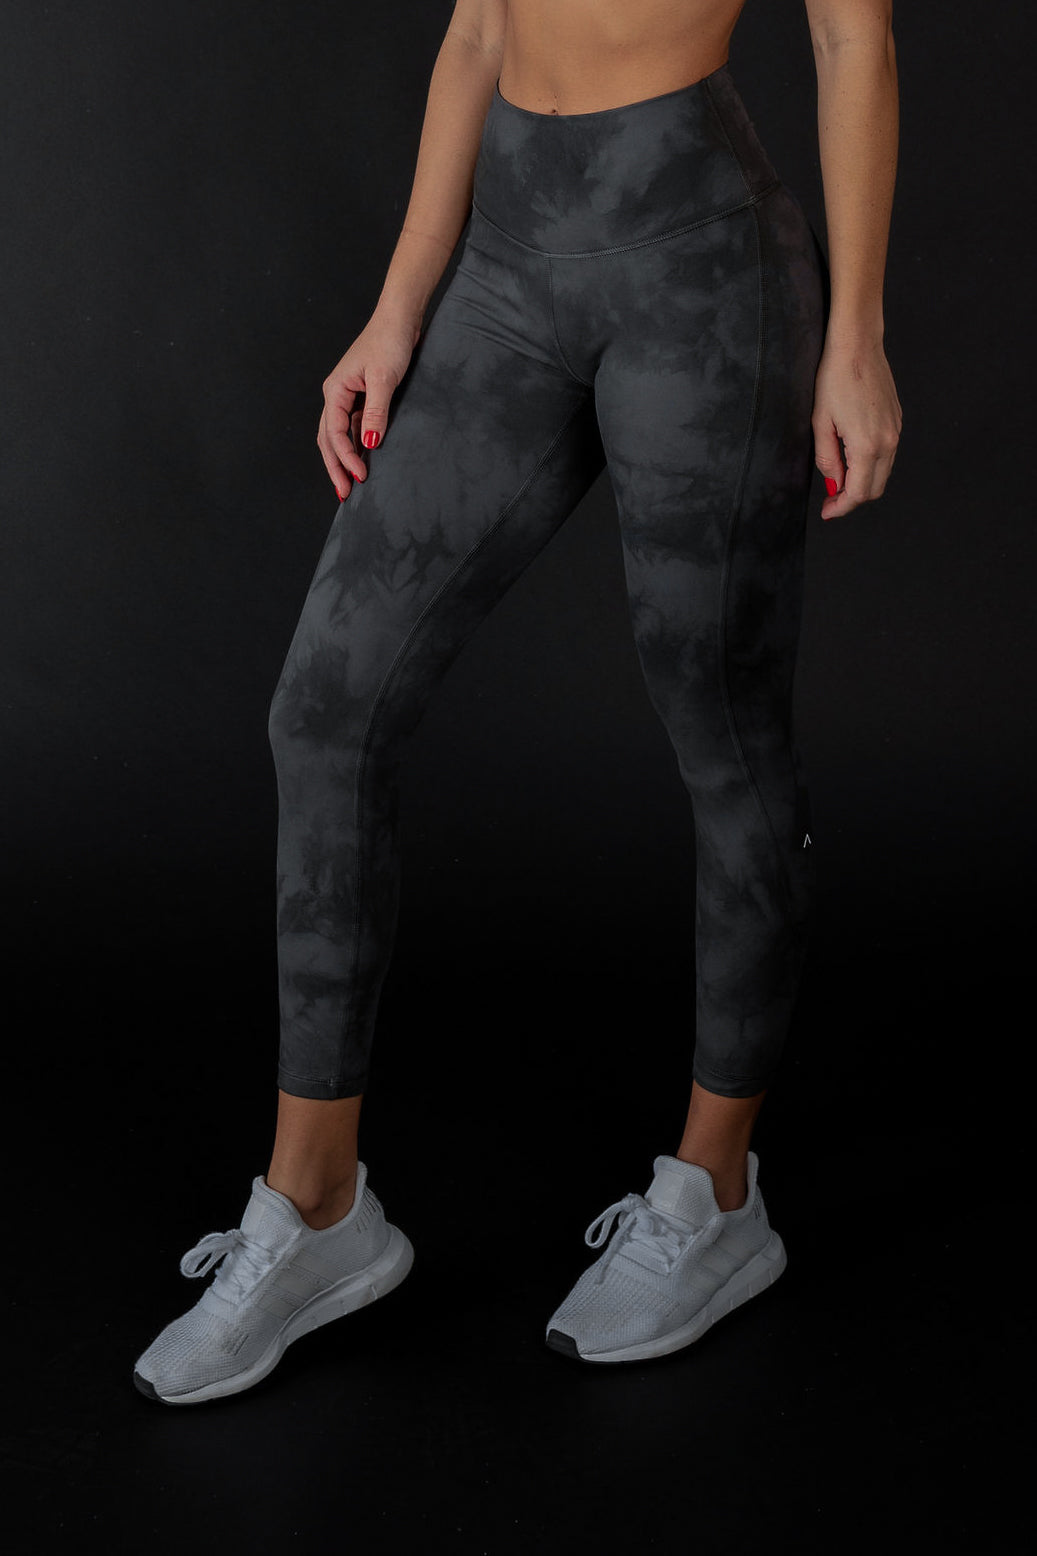 ACTA™ Black Smoke Leggings - Black